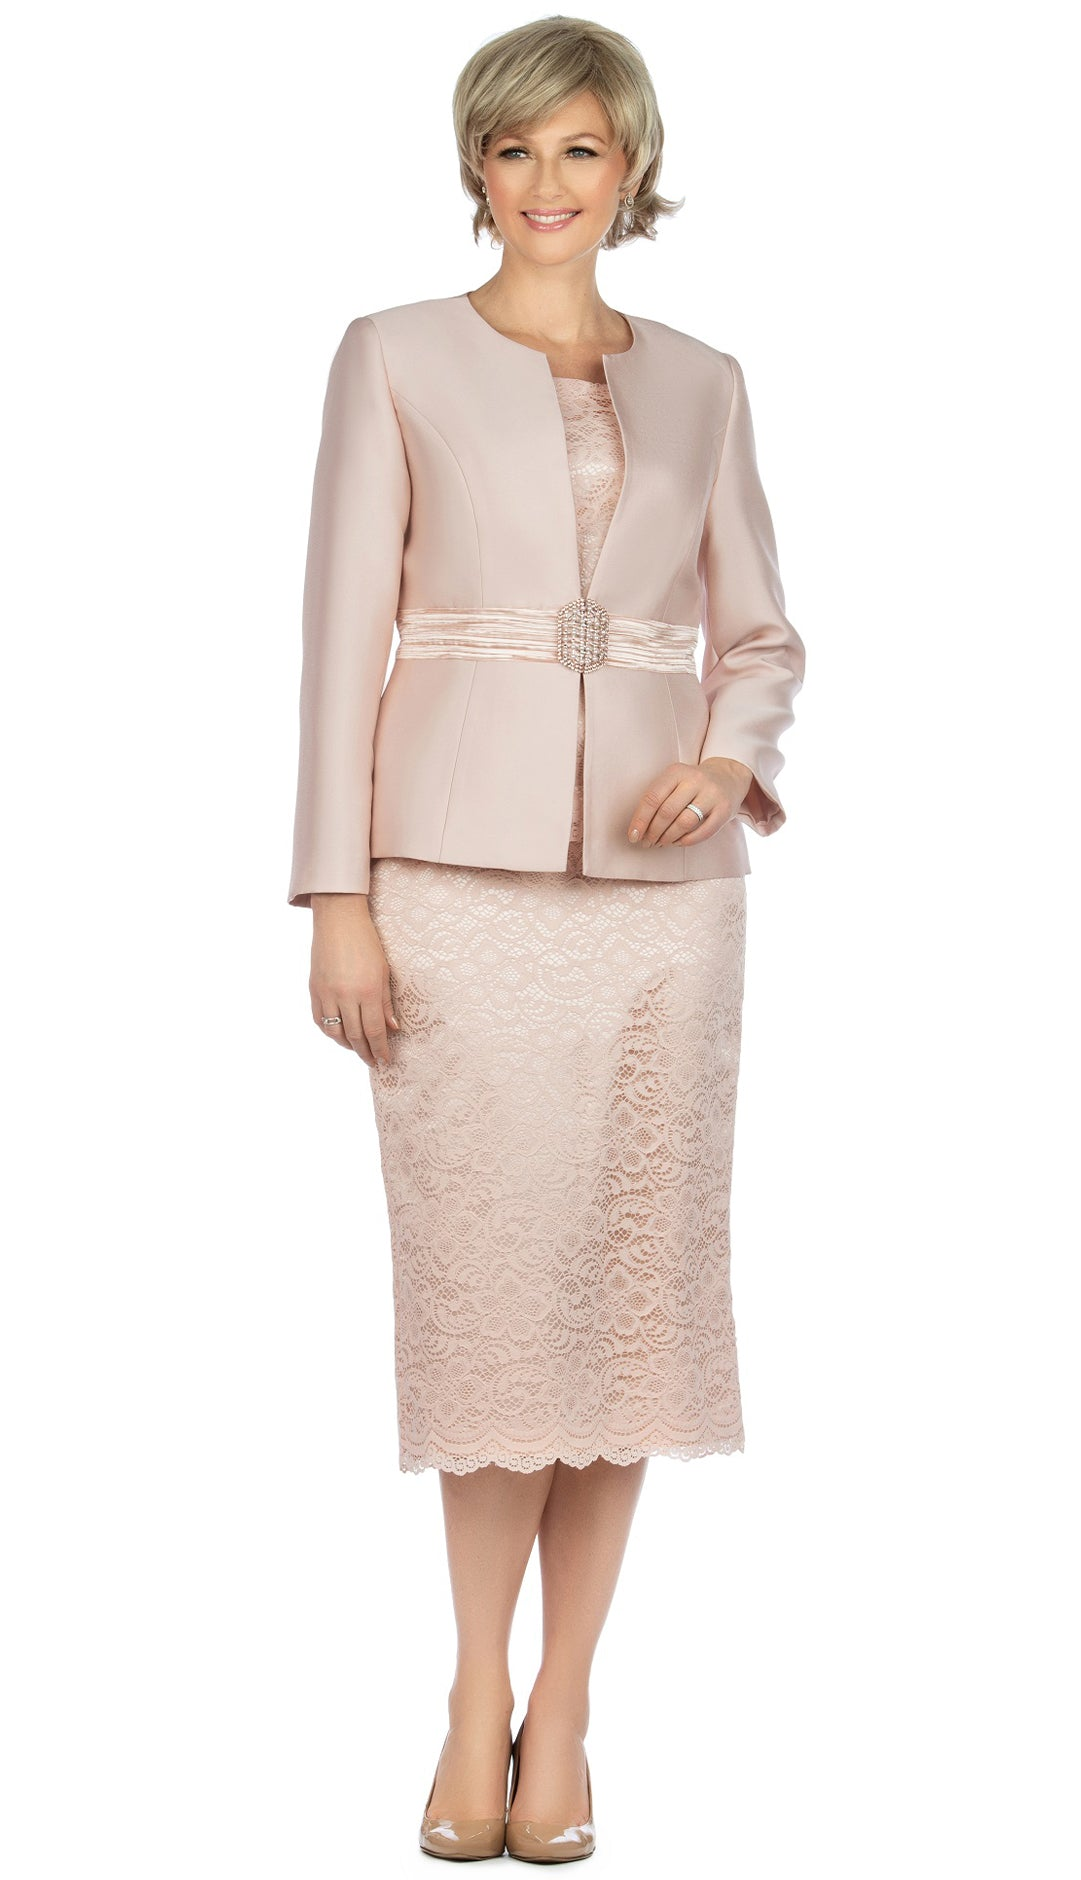 Giovanna Church Suit G1083-Light Pink - Church Suits For Less